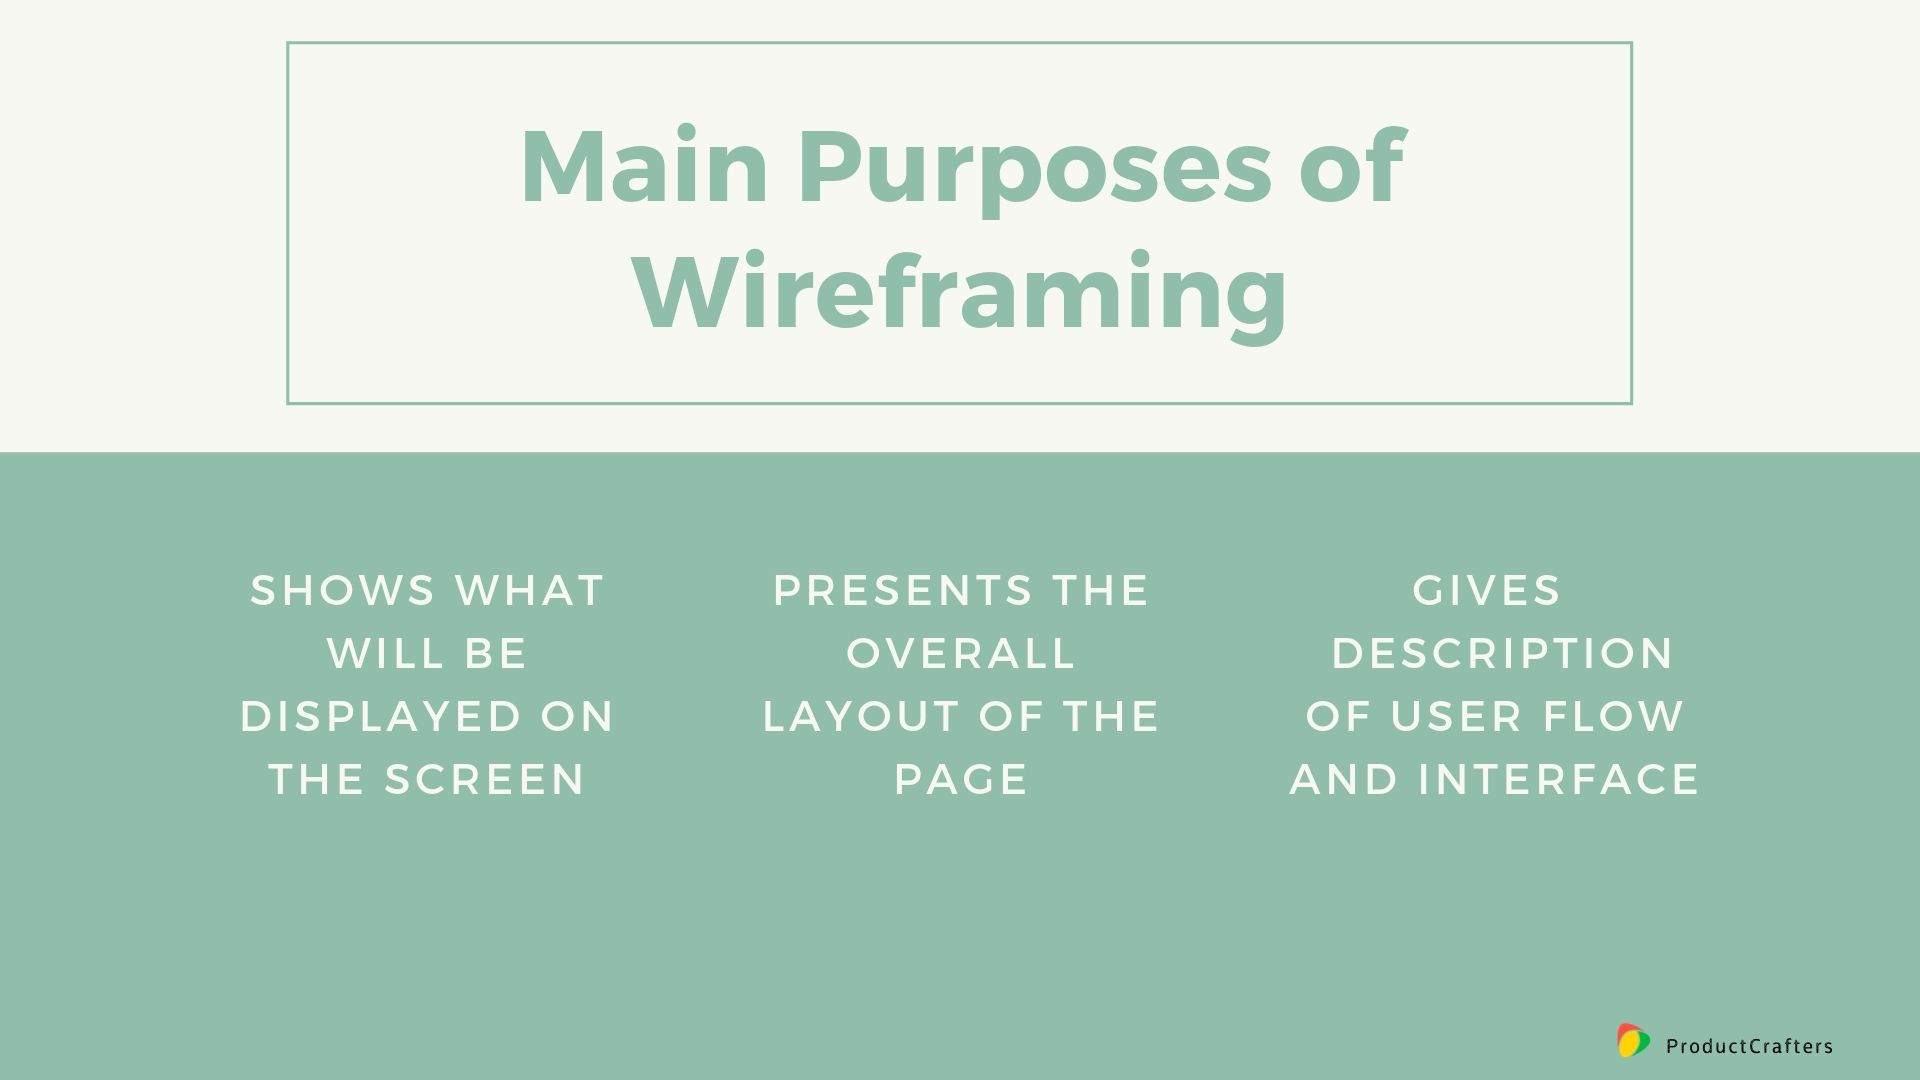 Main Purposes of Wireframing